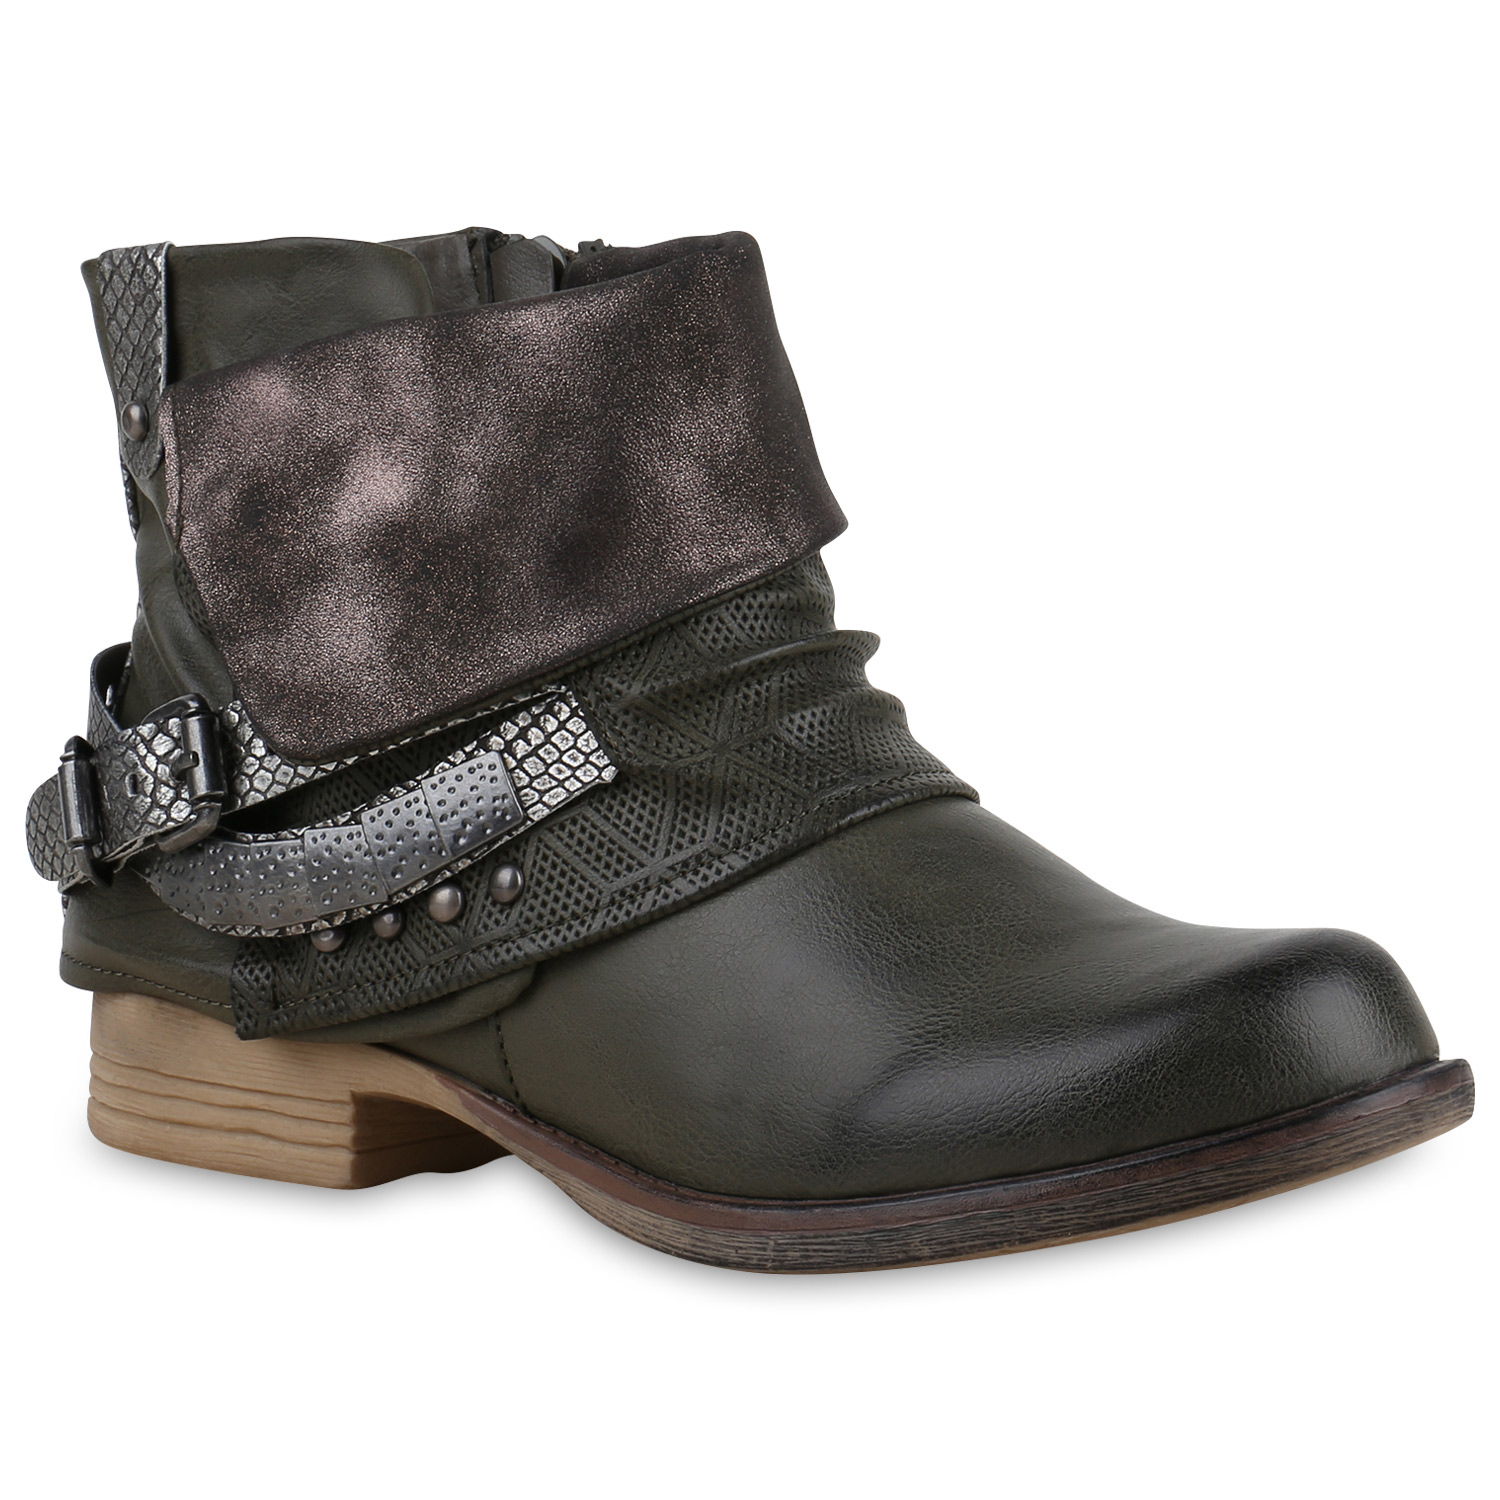 damen glitzer stiefeletten bequeme nieten biker boots. Black Bedroom Furniture Sets. Home Design Ideas